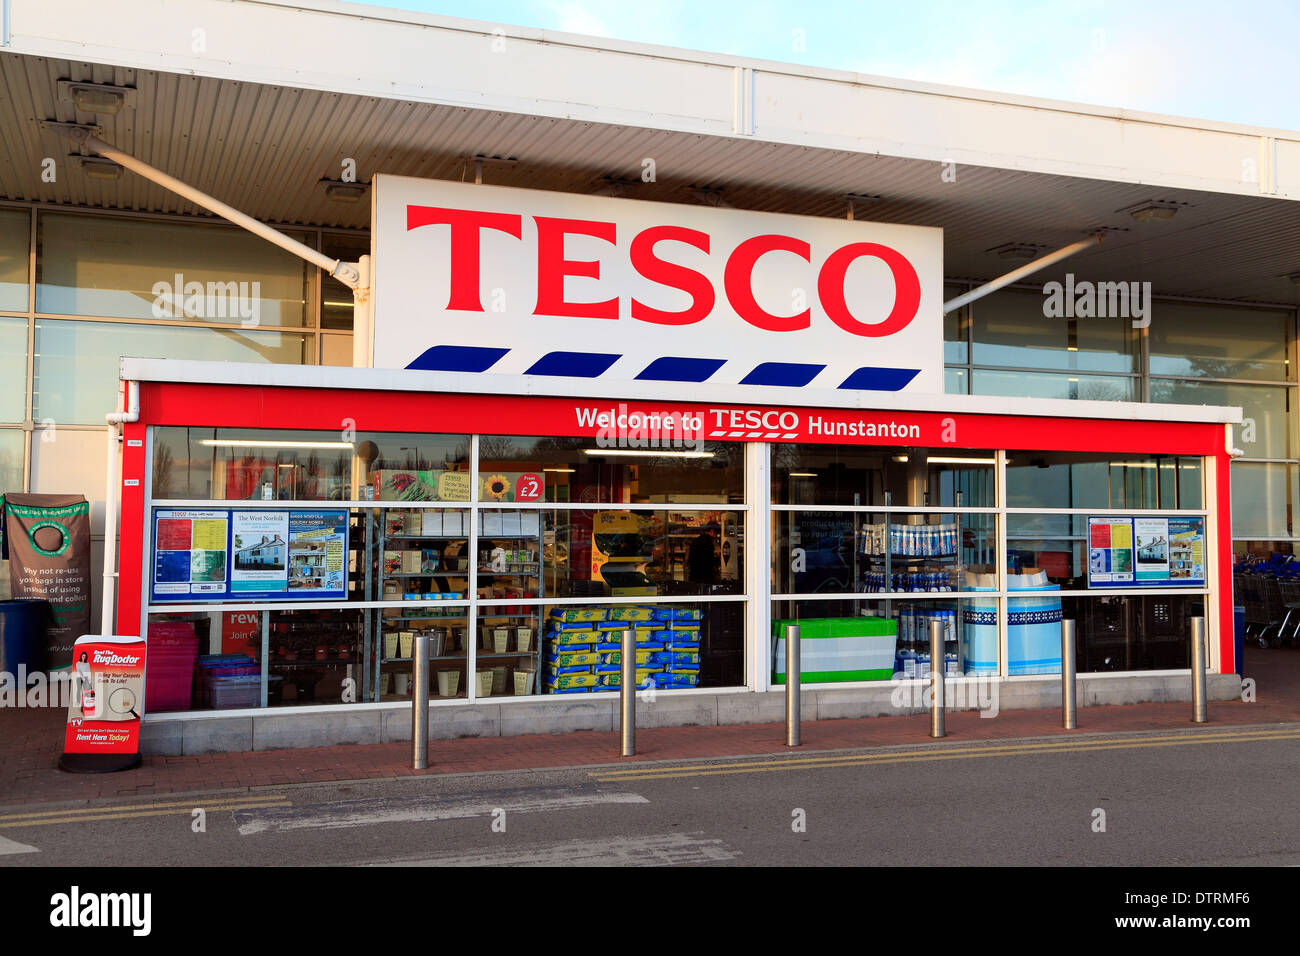 tesco the uk biggest supermarket The past half decade or so has seen a major shift in supermarket trends marked by the waning power of the big four tesco, sainsbury's, asda and morrisons accounted for a combined market share of.